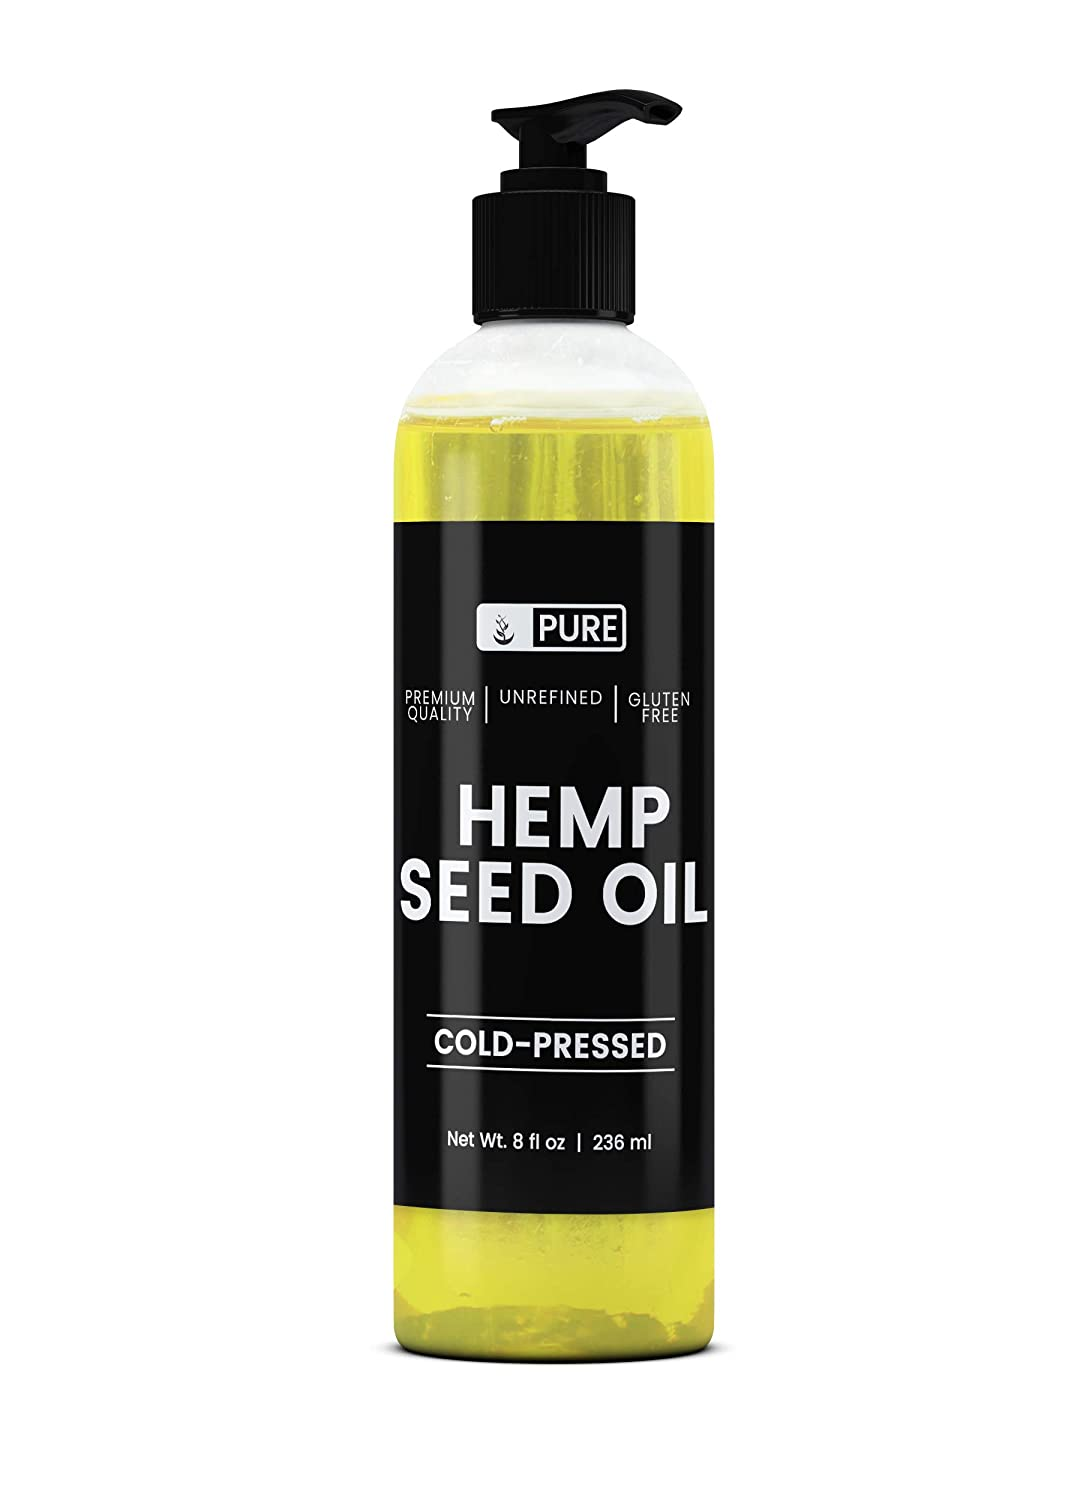 Premium Hemp Seed Oil, 8 fl oz, Cold Pressed & Unrefined, Food Grade, Natural, Cruelty-Free & Preservative-Free, BPA-Free & Recyclable, Made in the USA